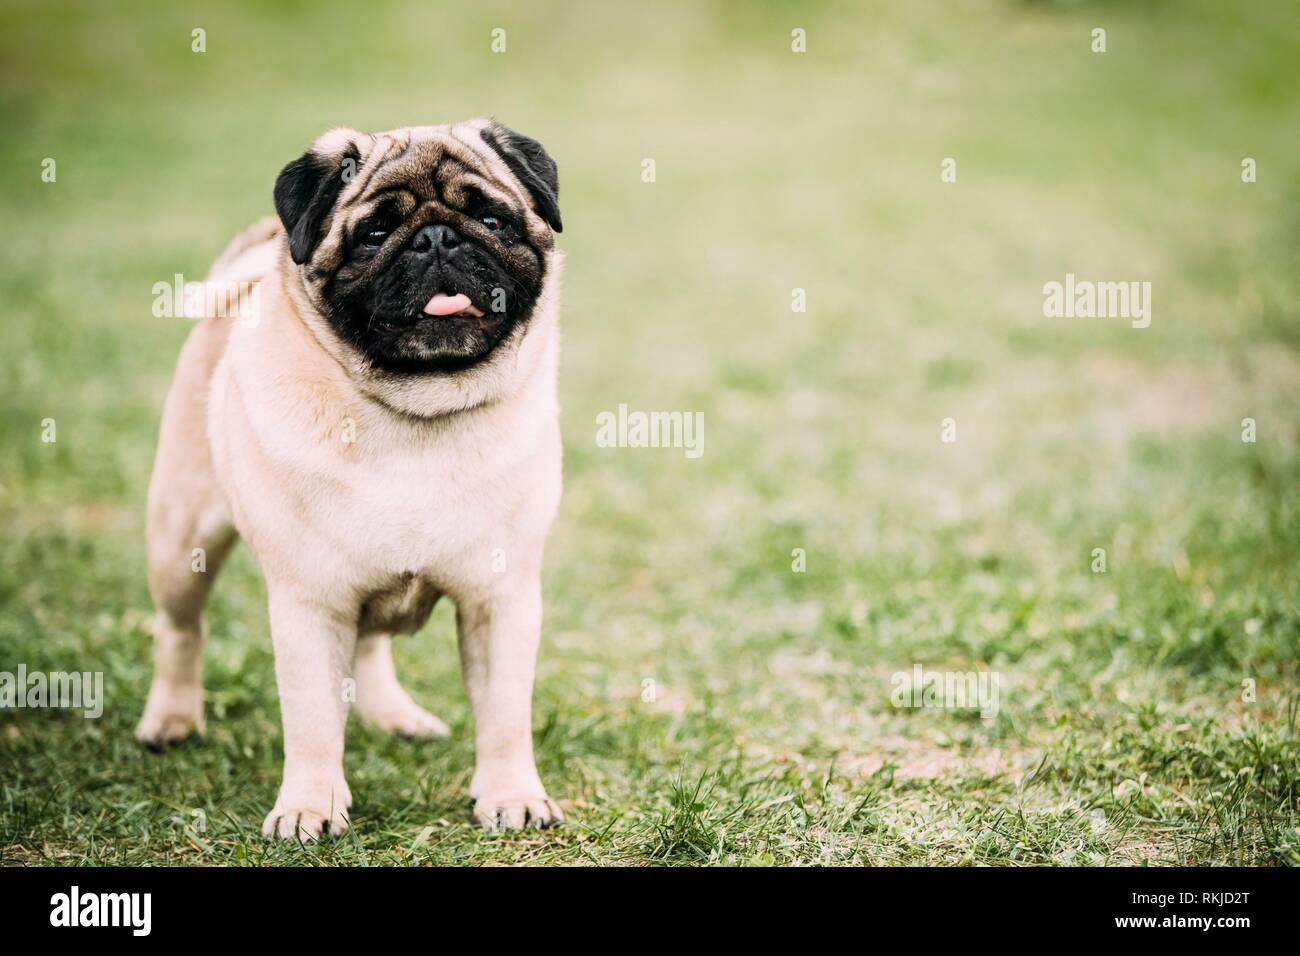 Young Pug Or Mops Standing In Green Grass. - Stock Image